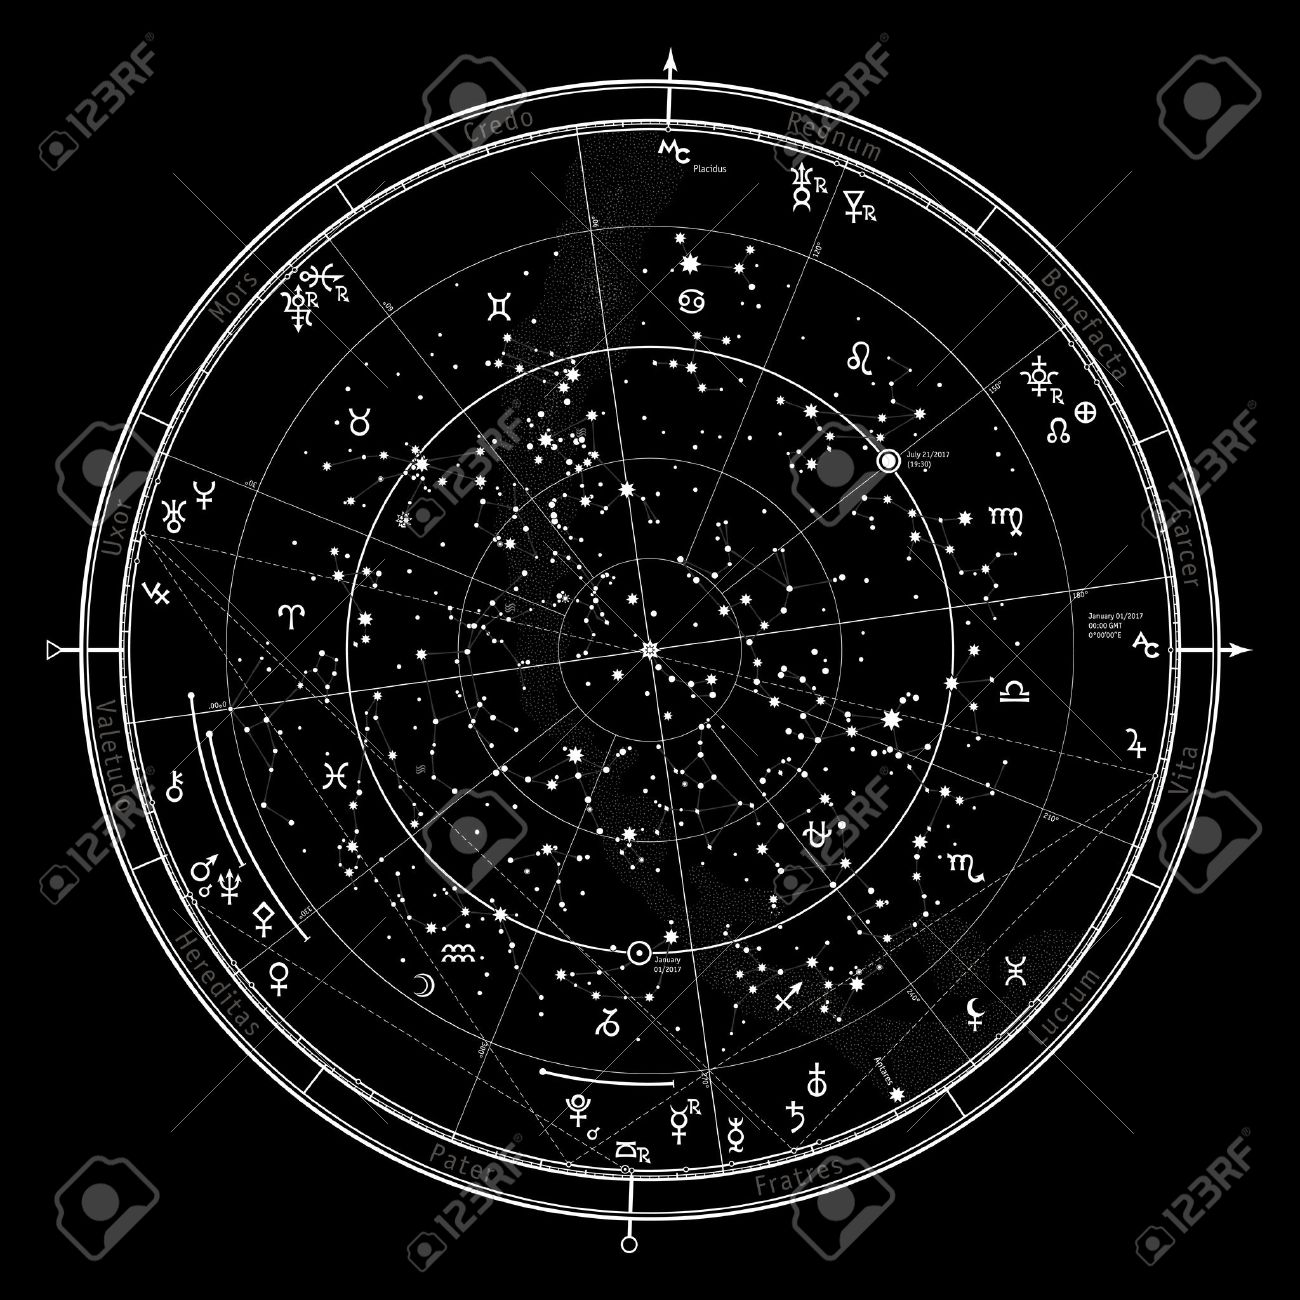 Astrological celestial map of northern hemisphere horoscope astrological celestial map of northern hemisphere horoscope on january 1 2017 00 ccuart Gallery